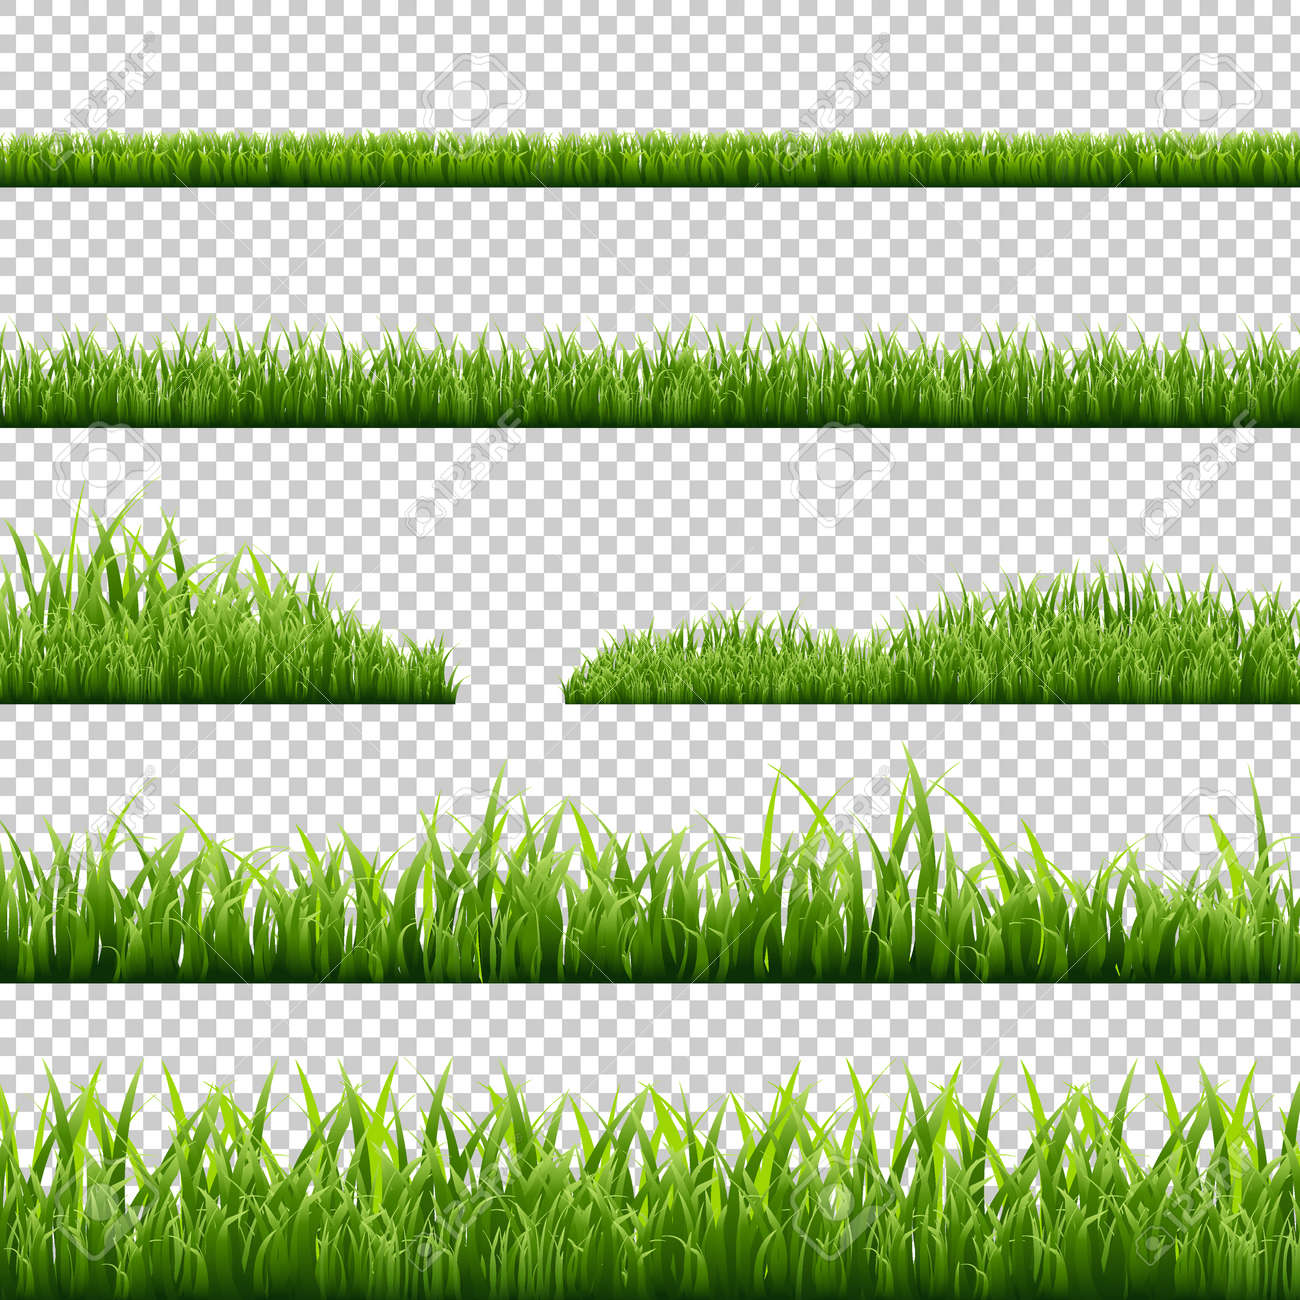 Grass Borders Set, Isolated on Transparent Background, Vector Illustration - 56875701